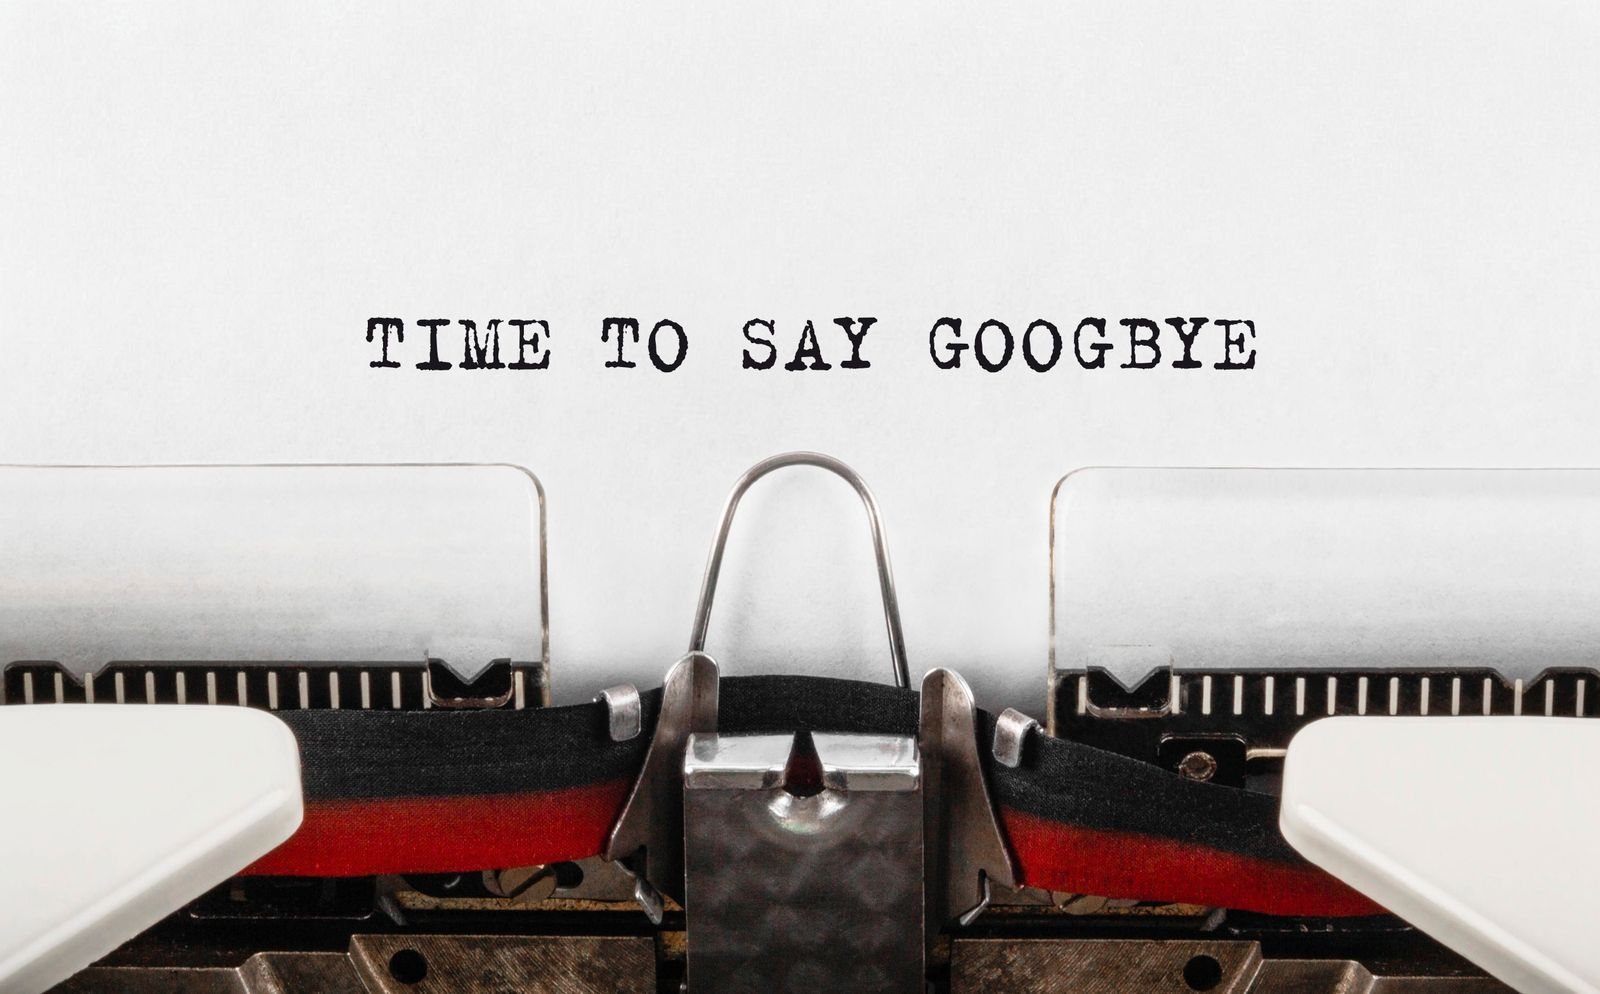 Text Time to Say Goodbye typed on typewriter